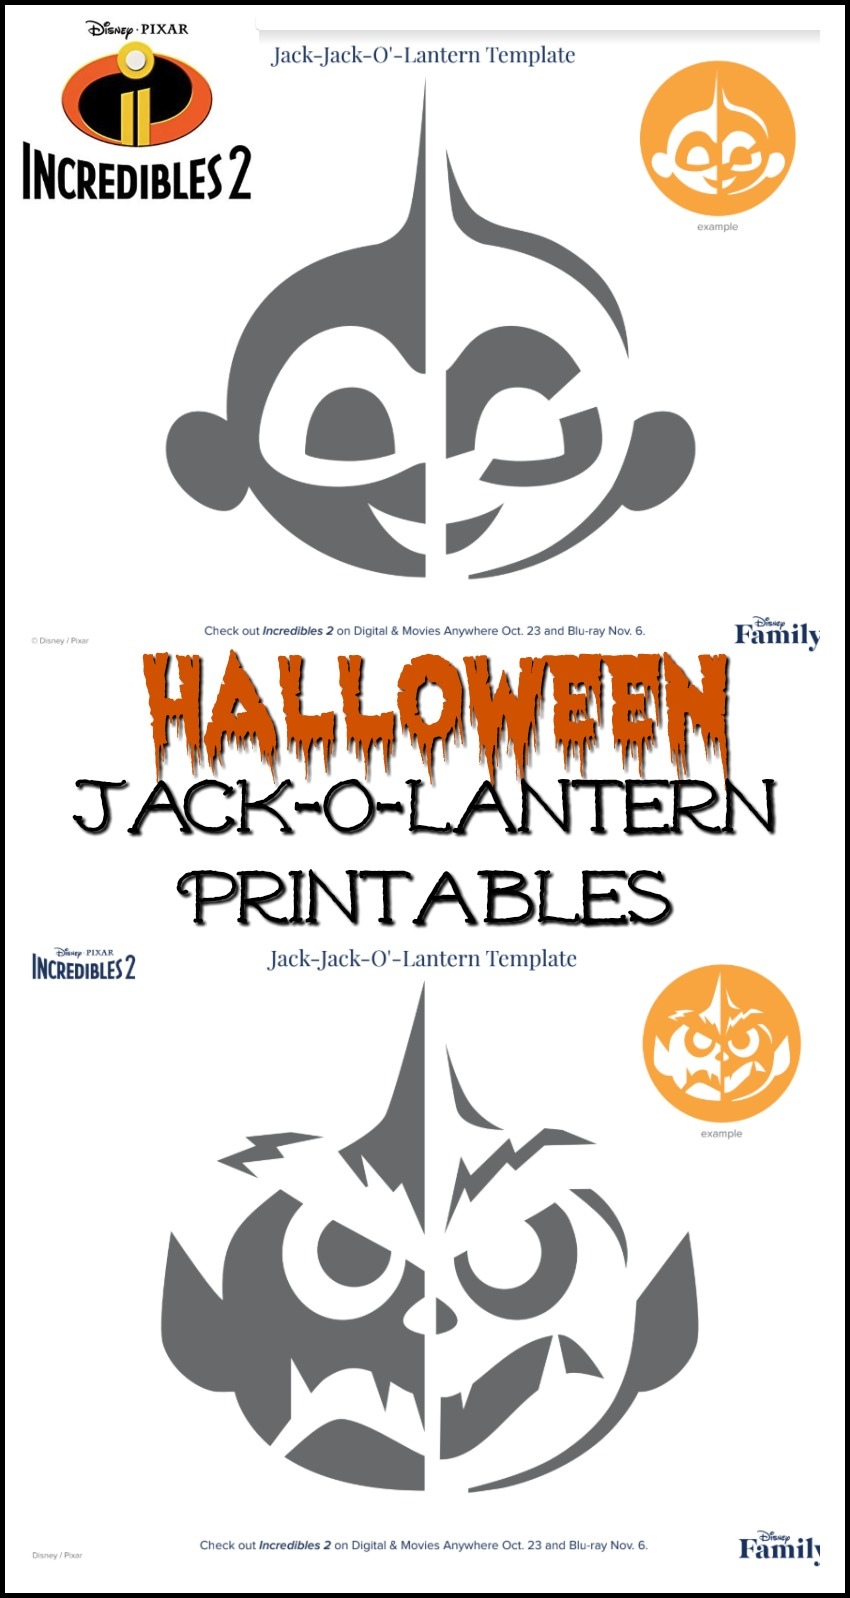 Incredible 2 Halloween Printables #halloween Incredibles2 #printables